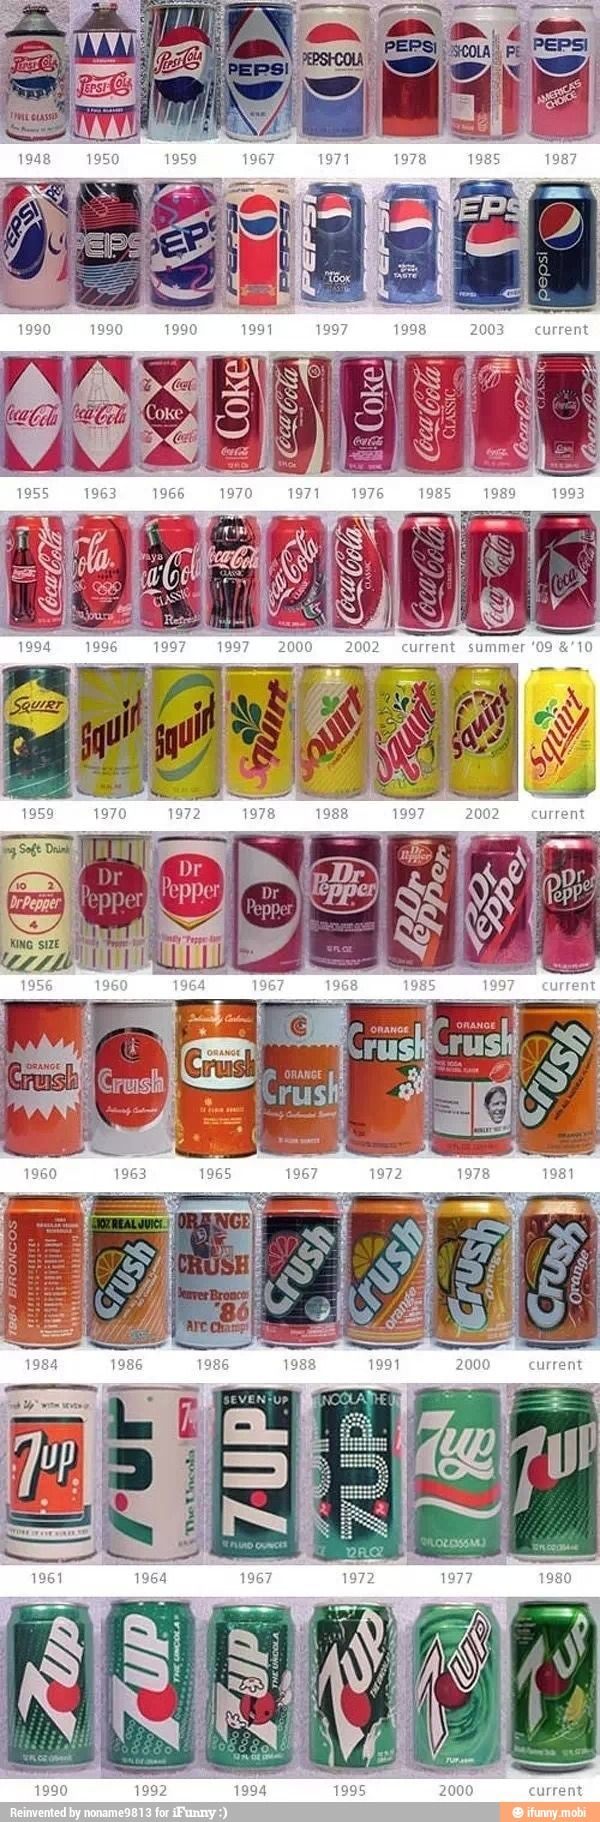 Evolution of popular soda brands.